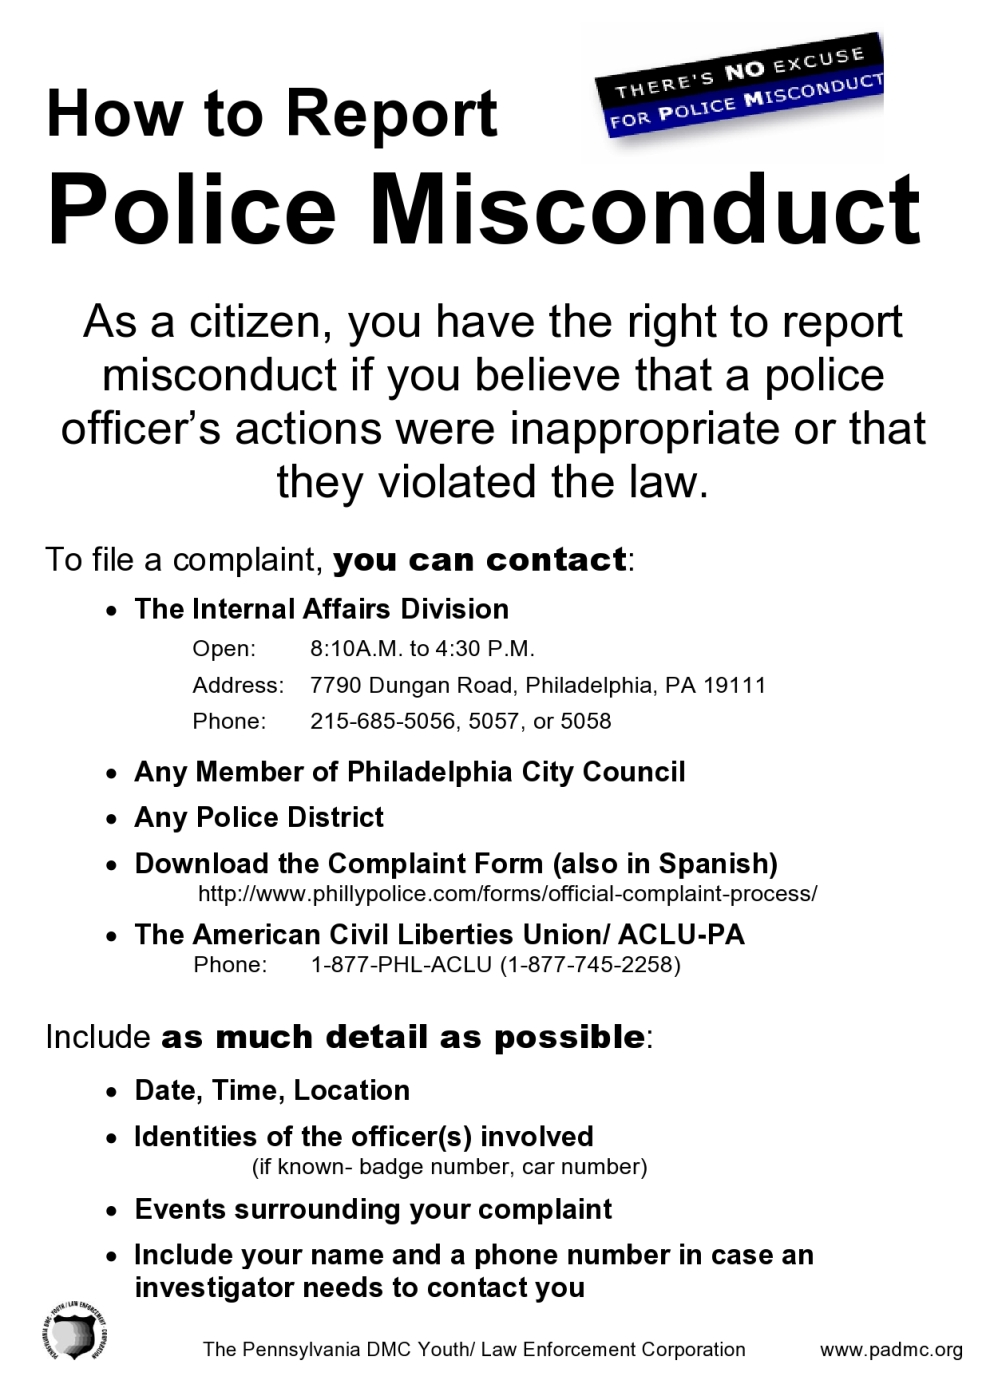 How to Report Police Misconduct-page0001